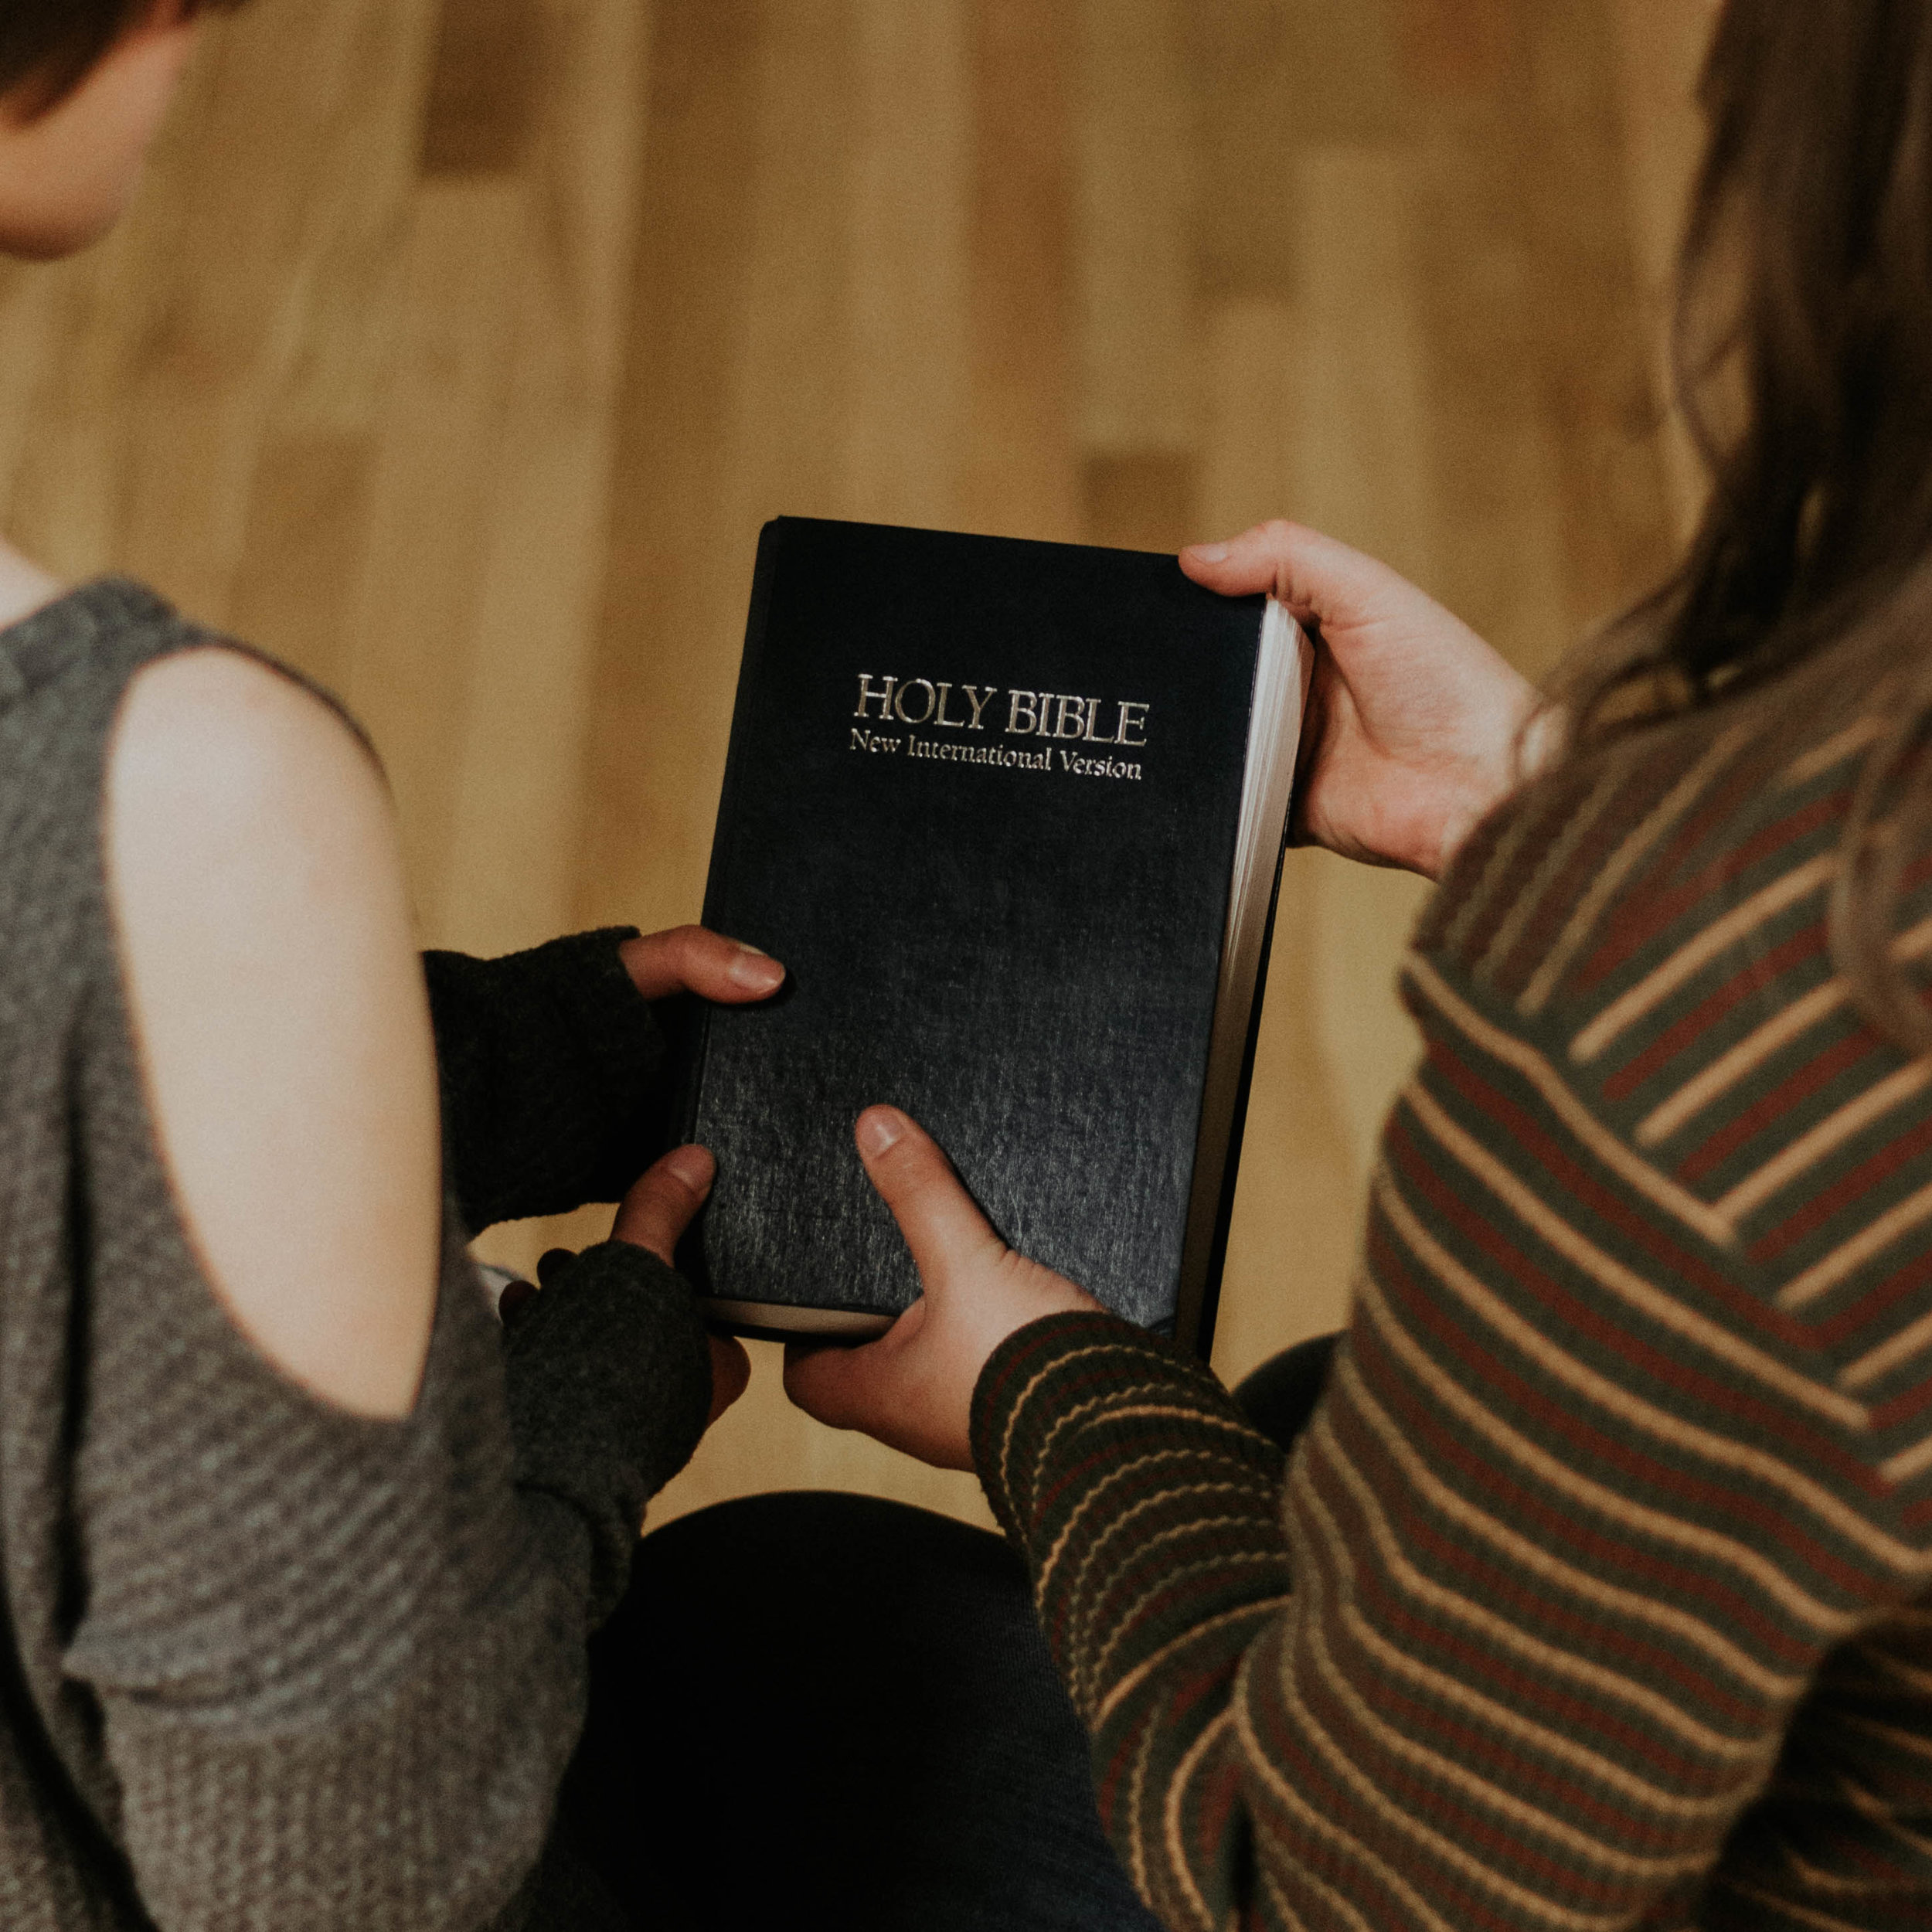 - Supplying non-believers and believers with the written Word Of God with the hope that they will come to faith in Jesus Christ and pursue discipleship.Our main focus has been to provide Bibles for students graduating from Keystone Charter School. Other recipients include international students studying at Thiel College (Bibles translated into their native language) and men incarcerated at Albion State Prison upon their baptism.